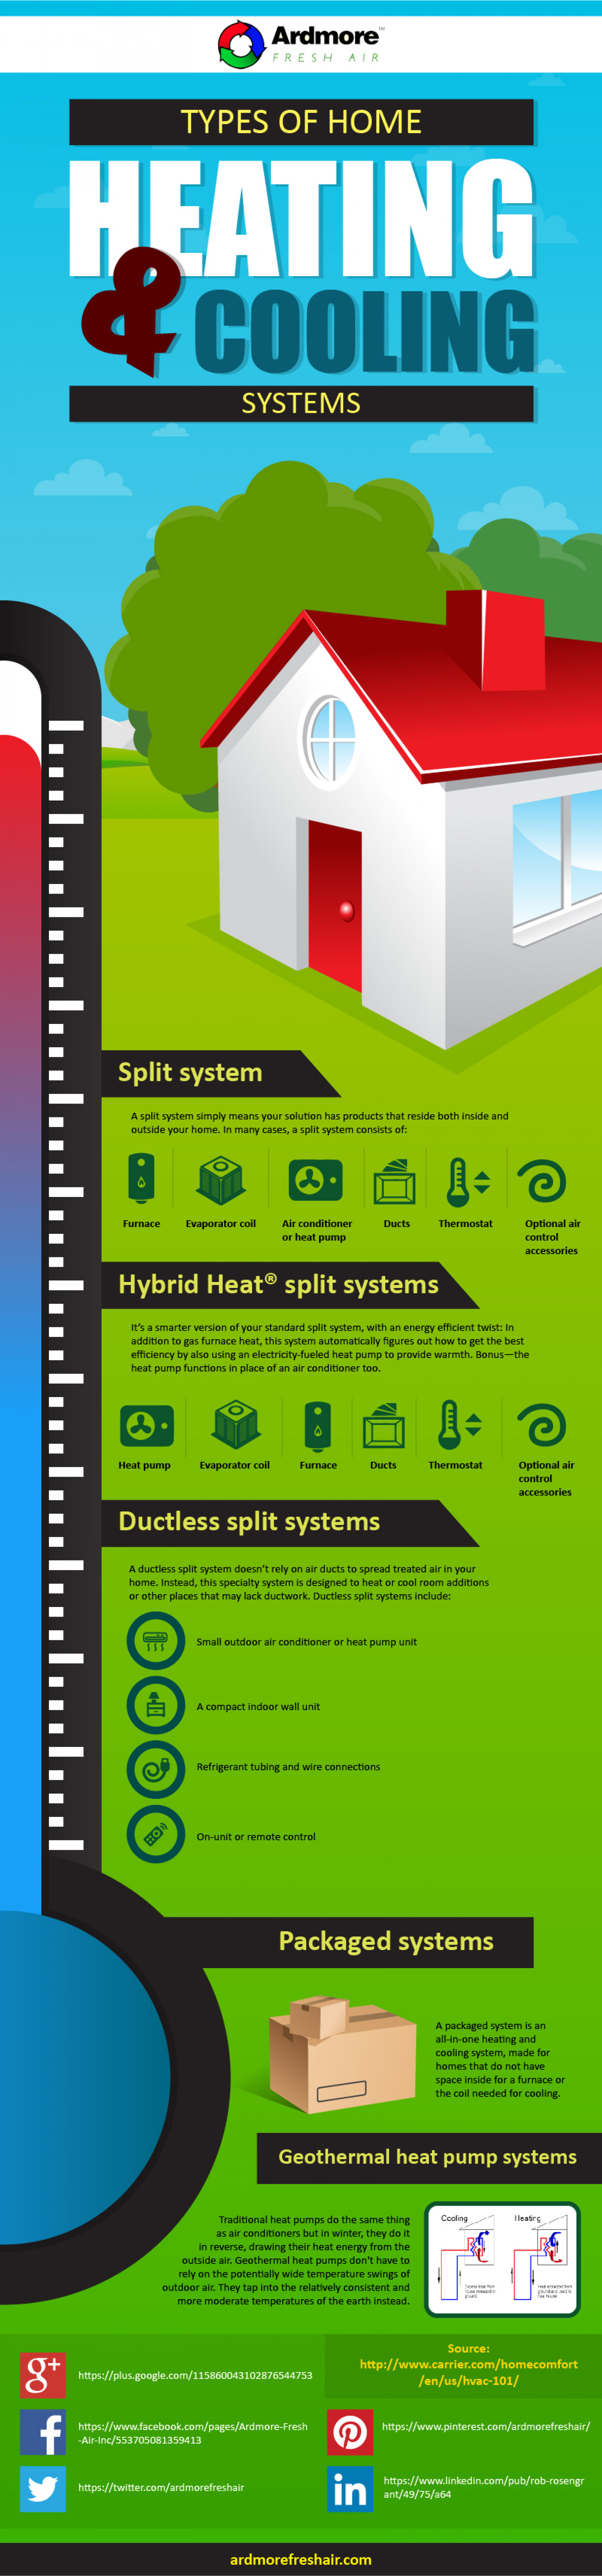 Types Of Home Heating Cooling System Ardmore Fresh Air Infographic